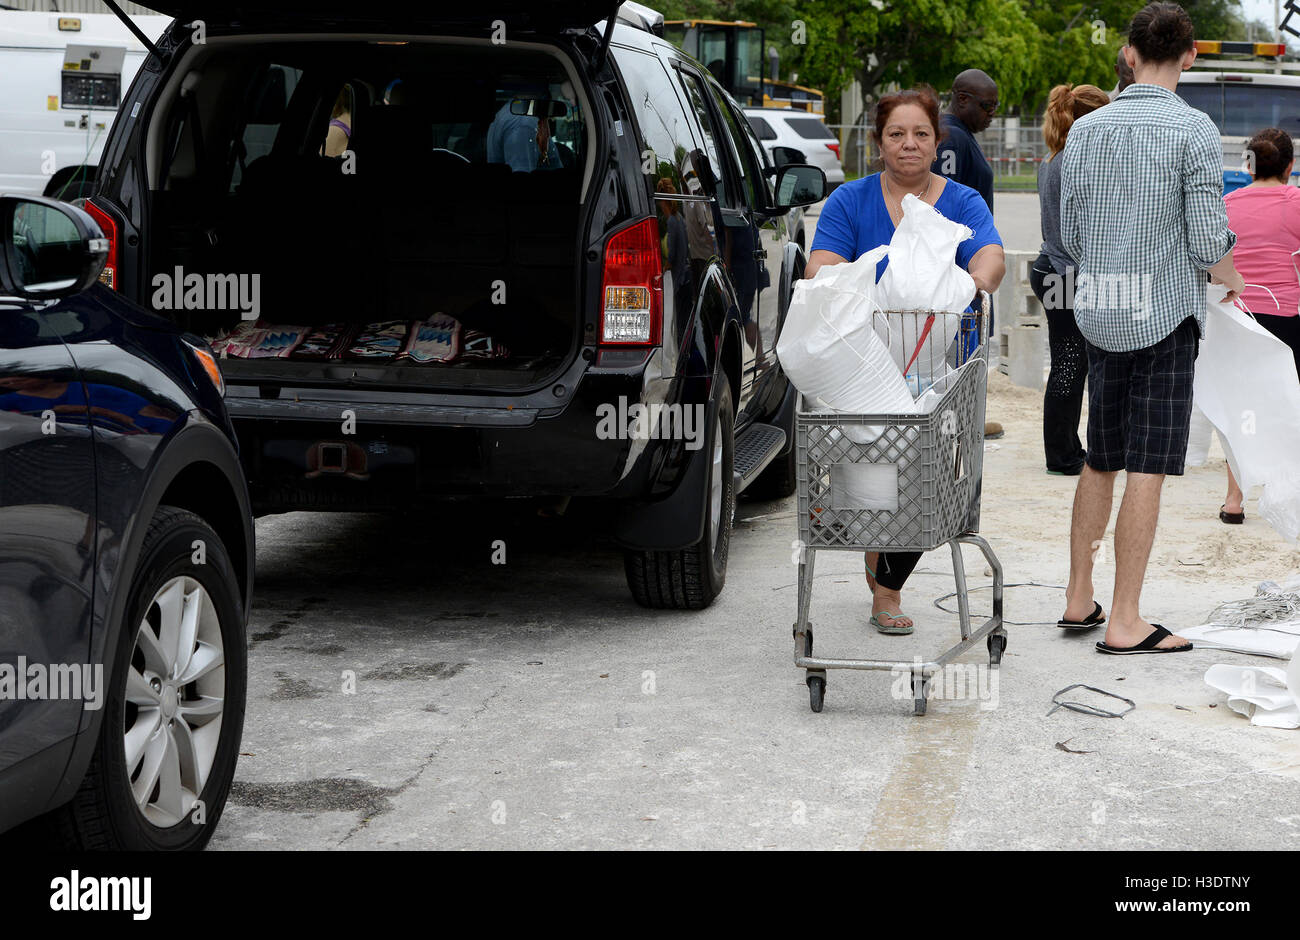 Deerfield Beach, FL, USA. 6th Oct, 2016. Patricia Castillo, of Deerfield Beach, uses an old shopping cart she found - Stock Image